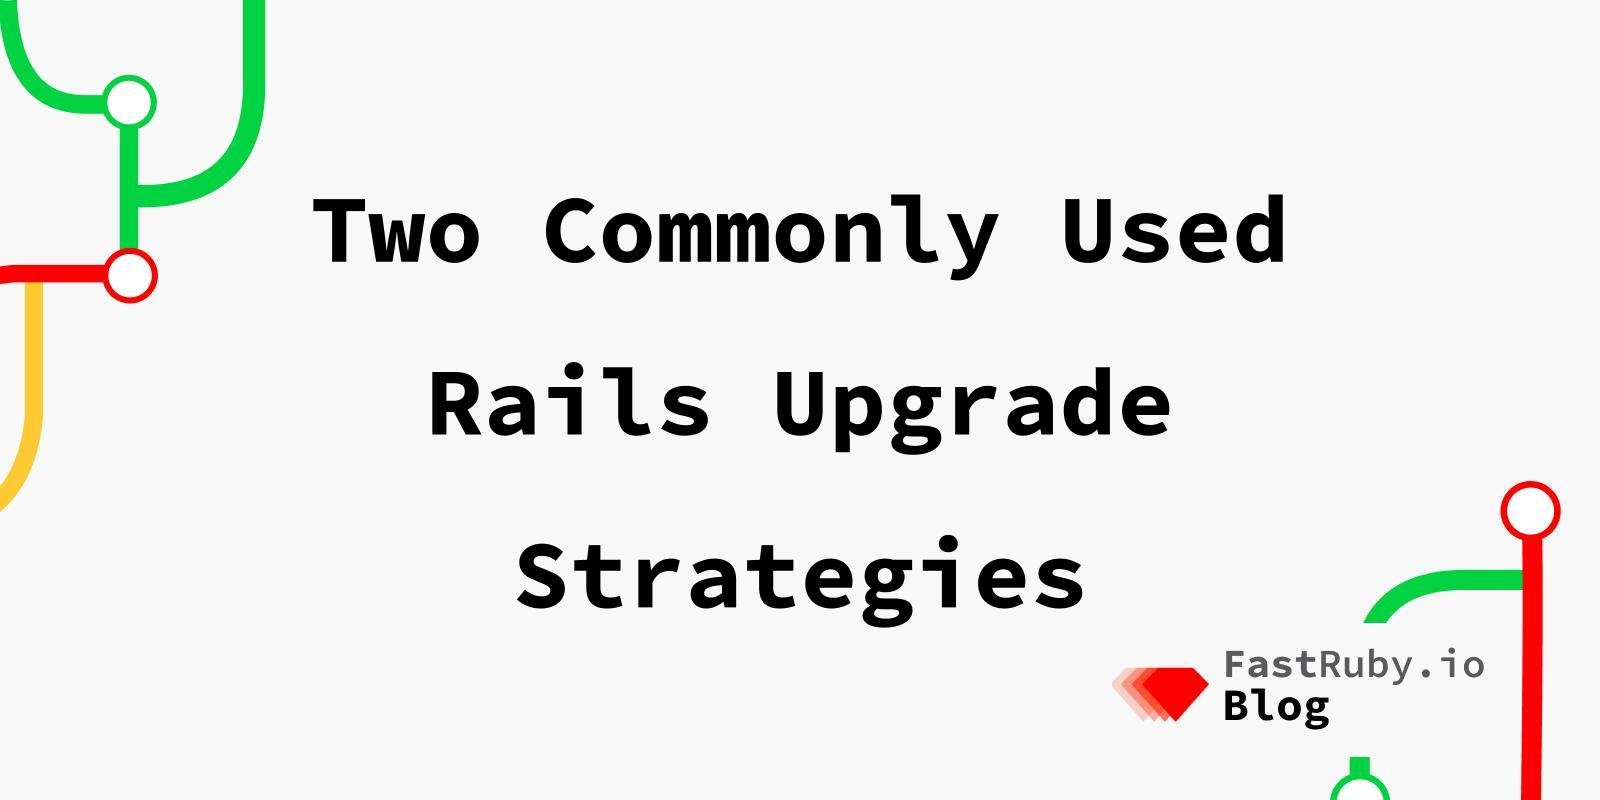 Two Commonly Used Rails Upgrade Strategies